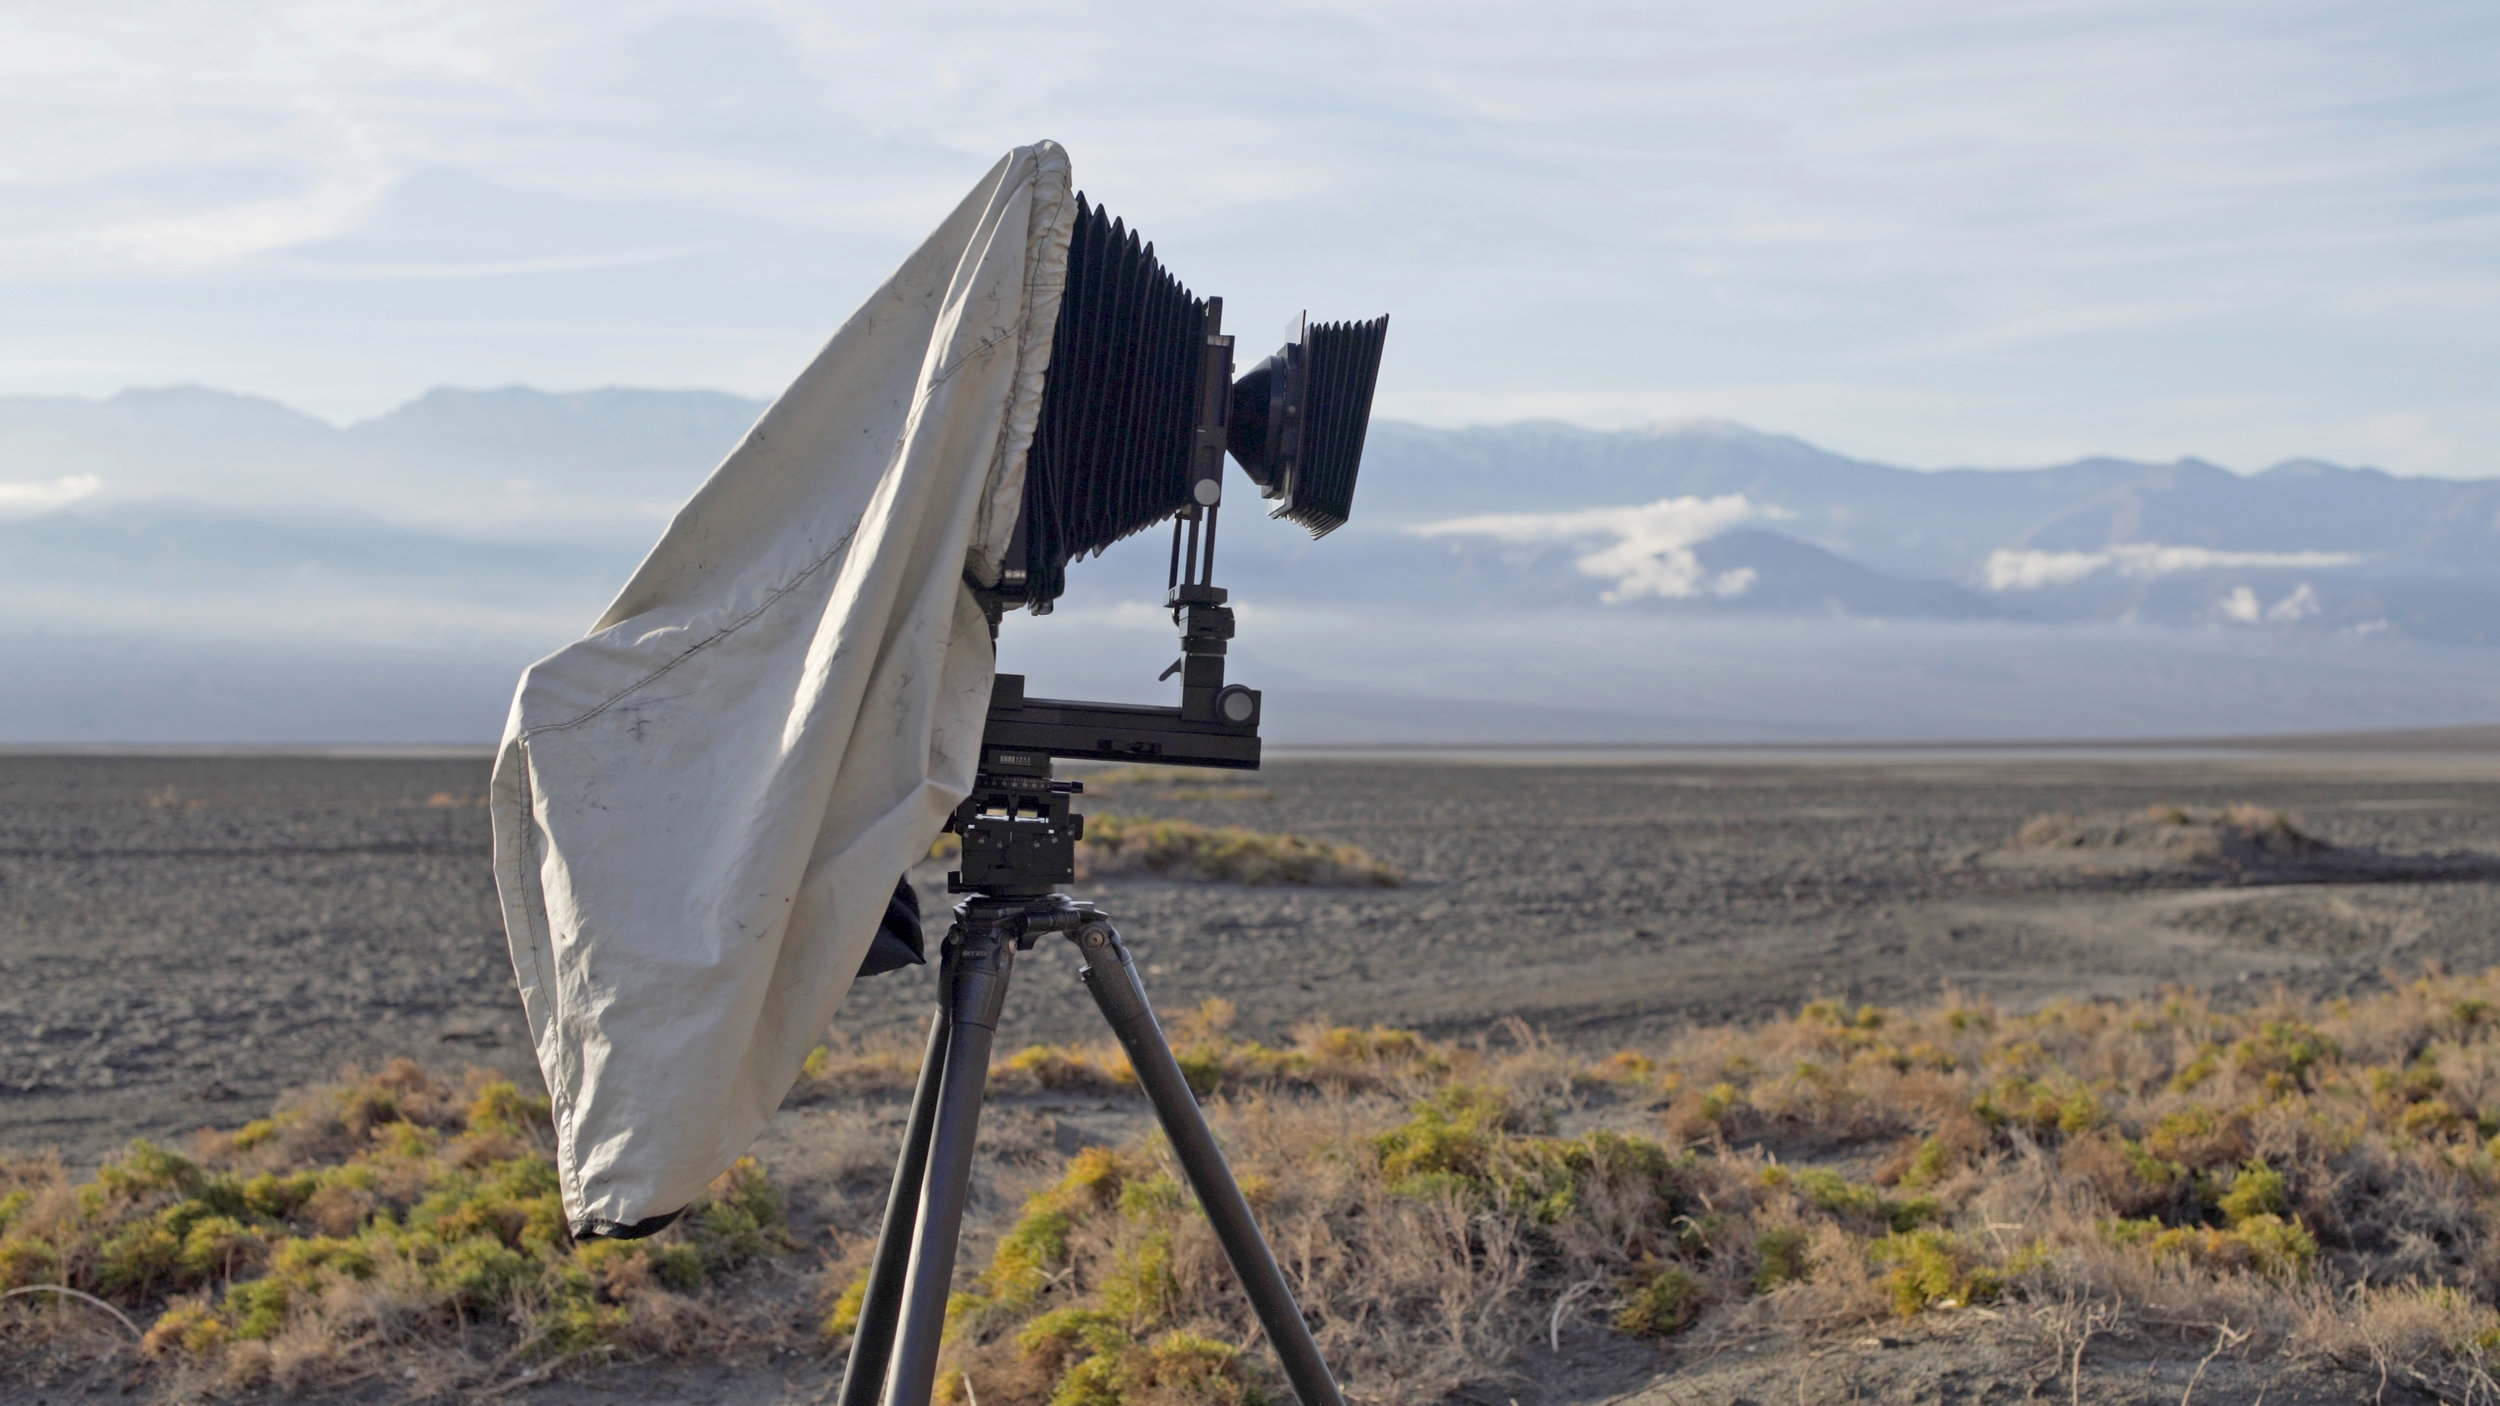 Shown above is the BTZS Focusing Hood attached to my Arca-Swiss F Metric 8x10 camera in Death Valley National Park. This dark cloth is compact, fits the camera very well, and even functions well in the wind.